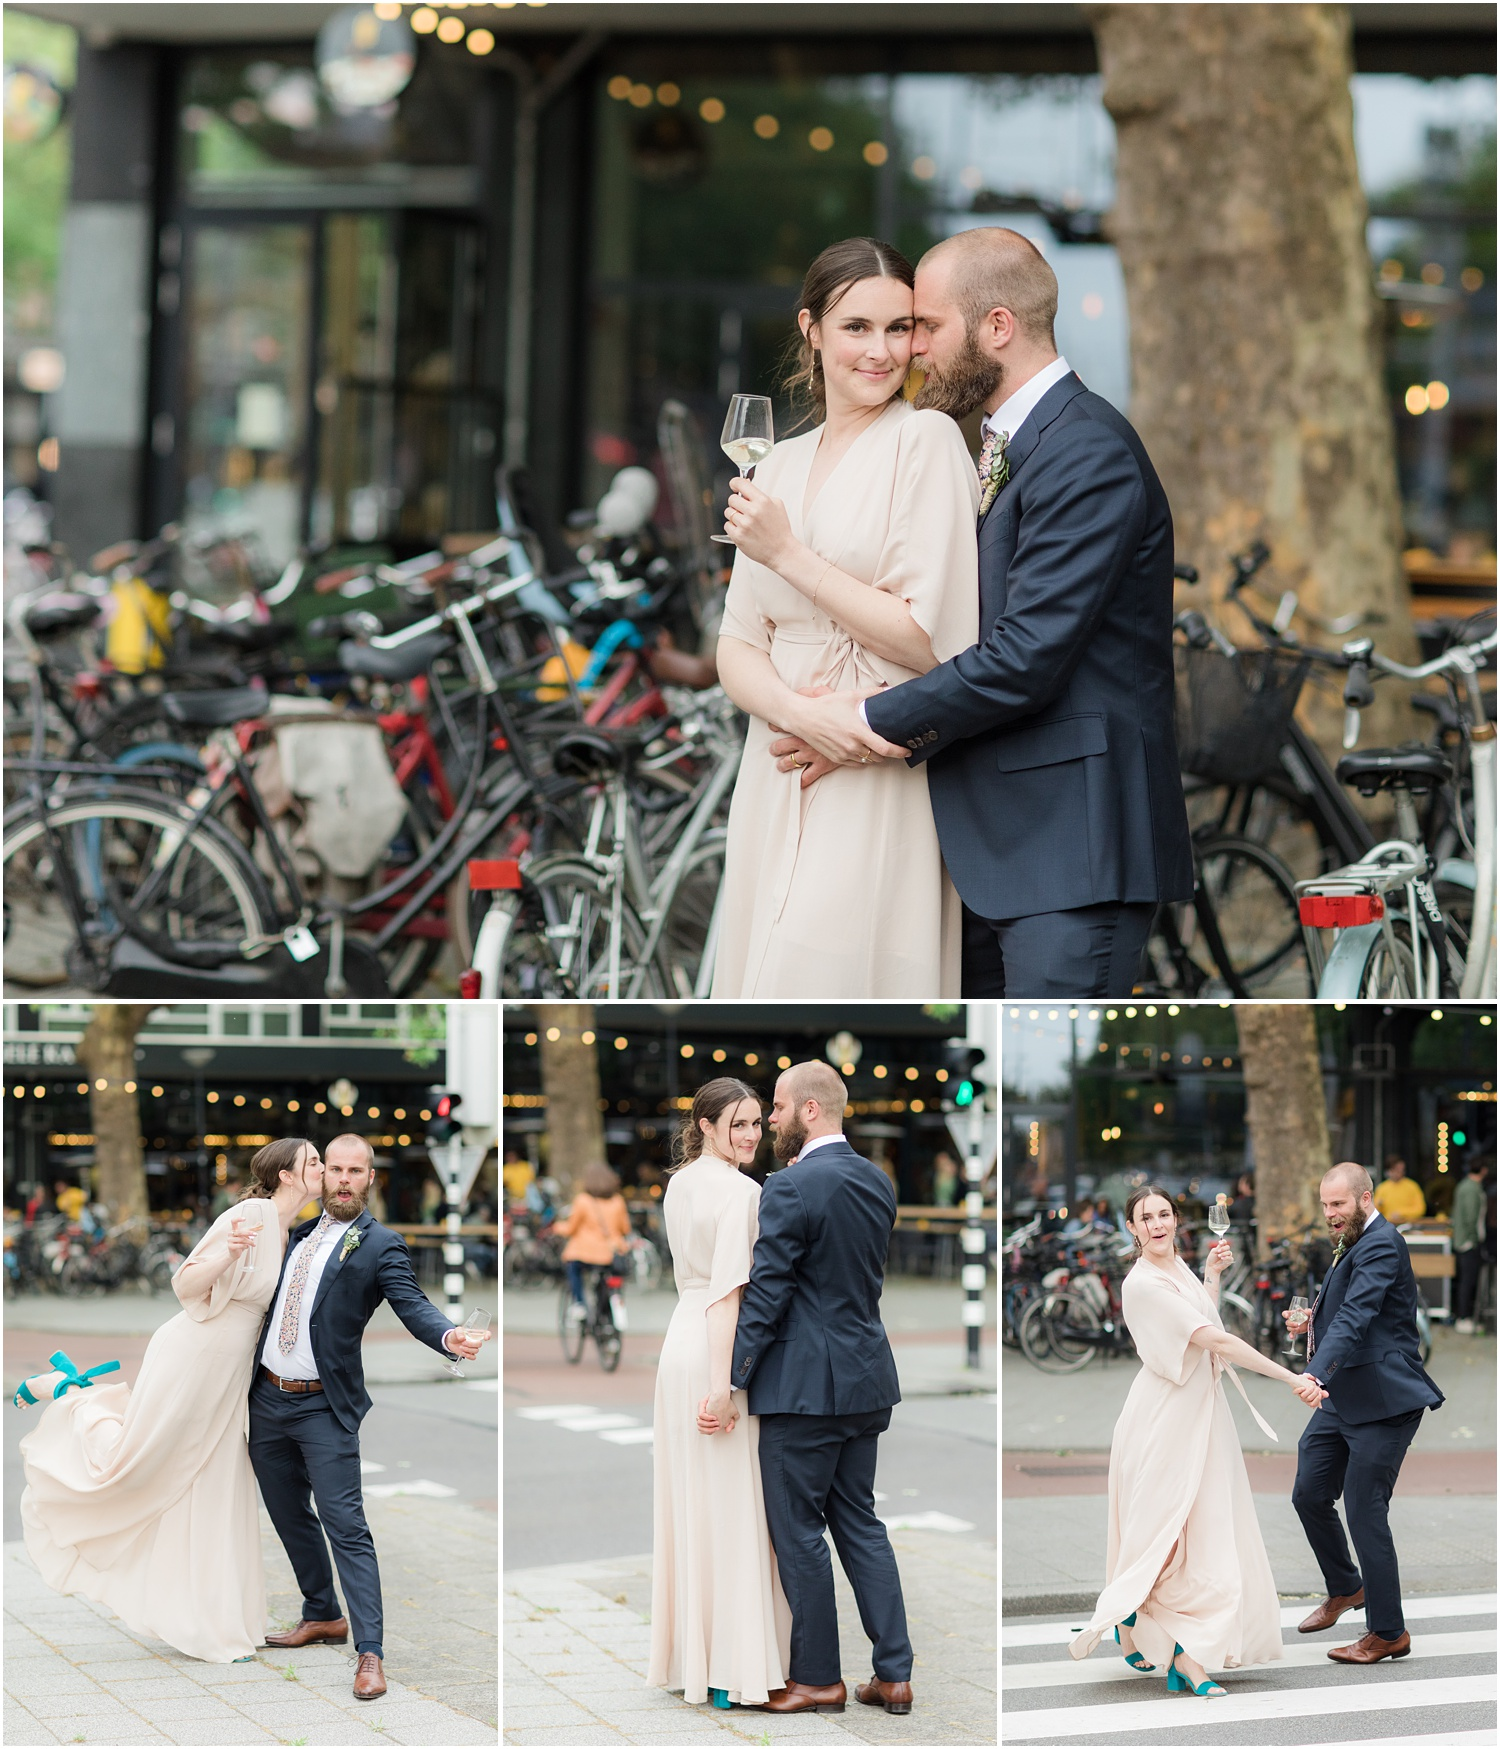 Fun Wedding photos on the streets of Rotterdam